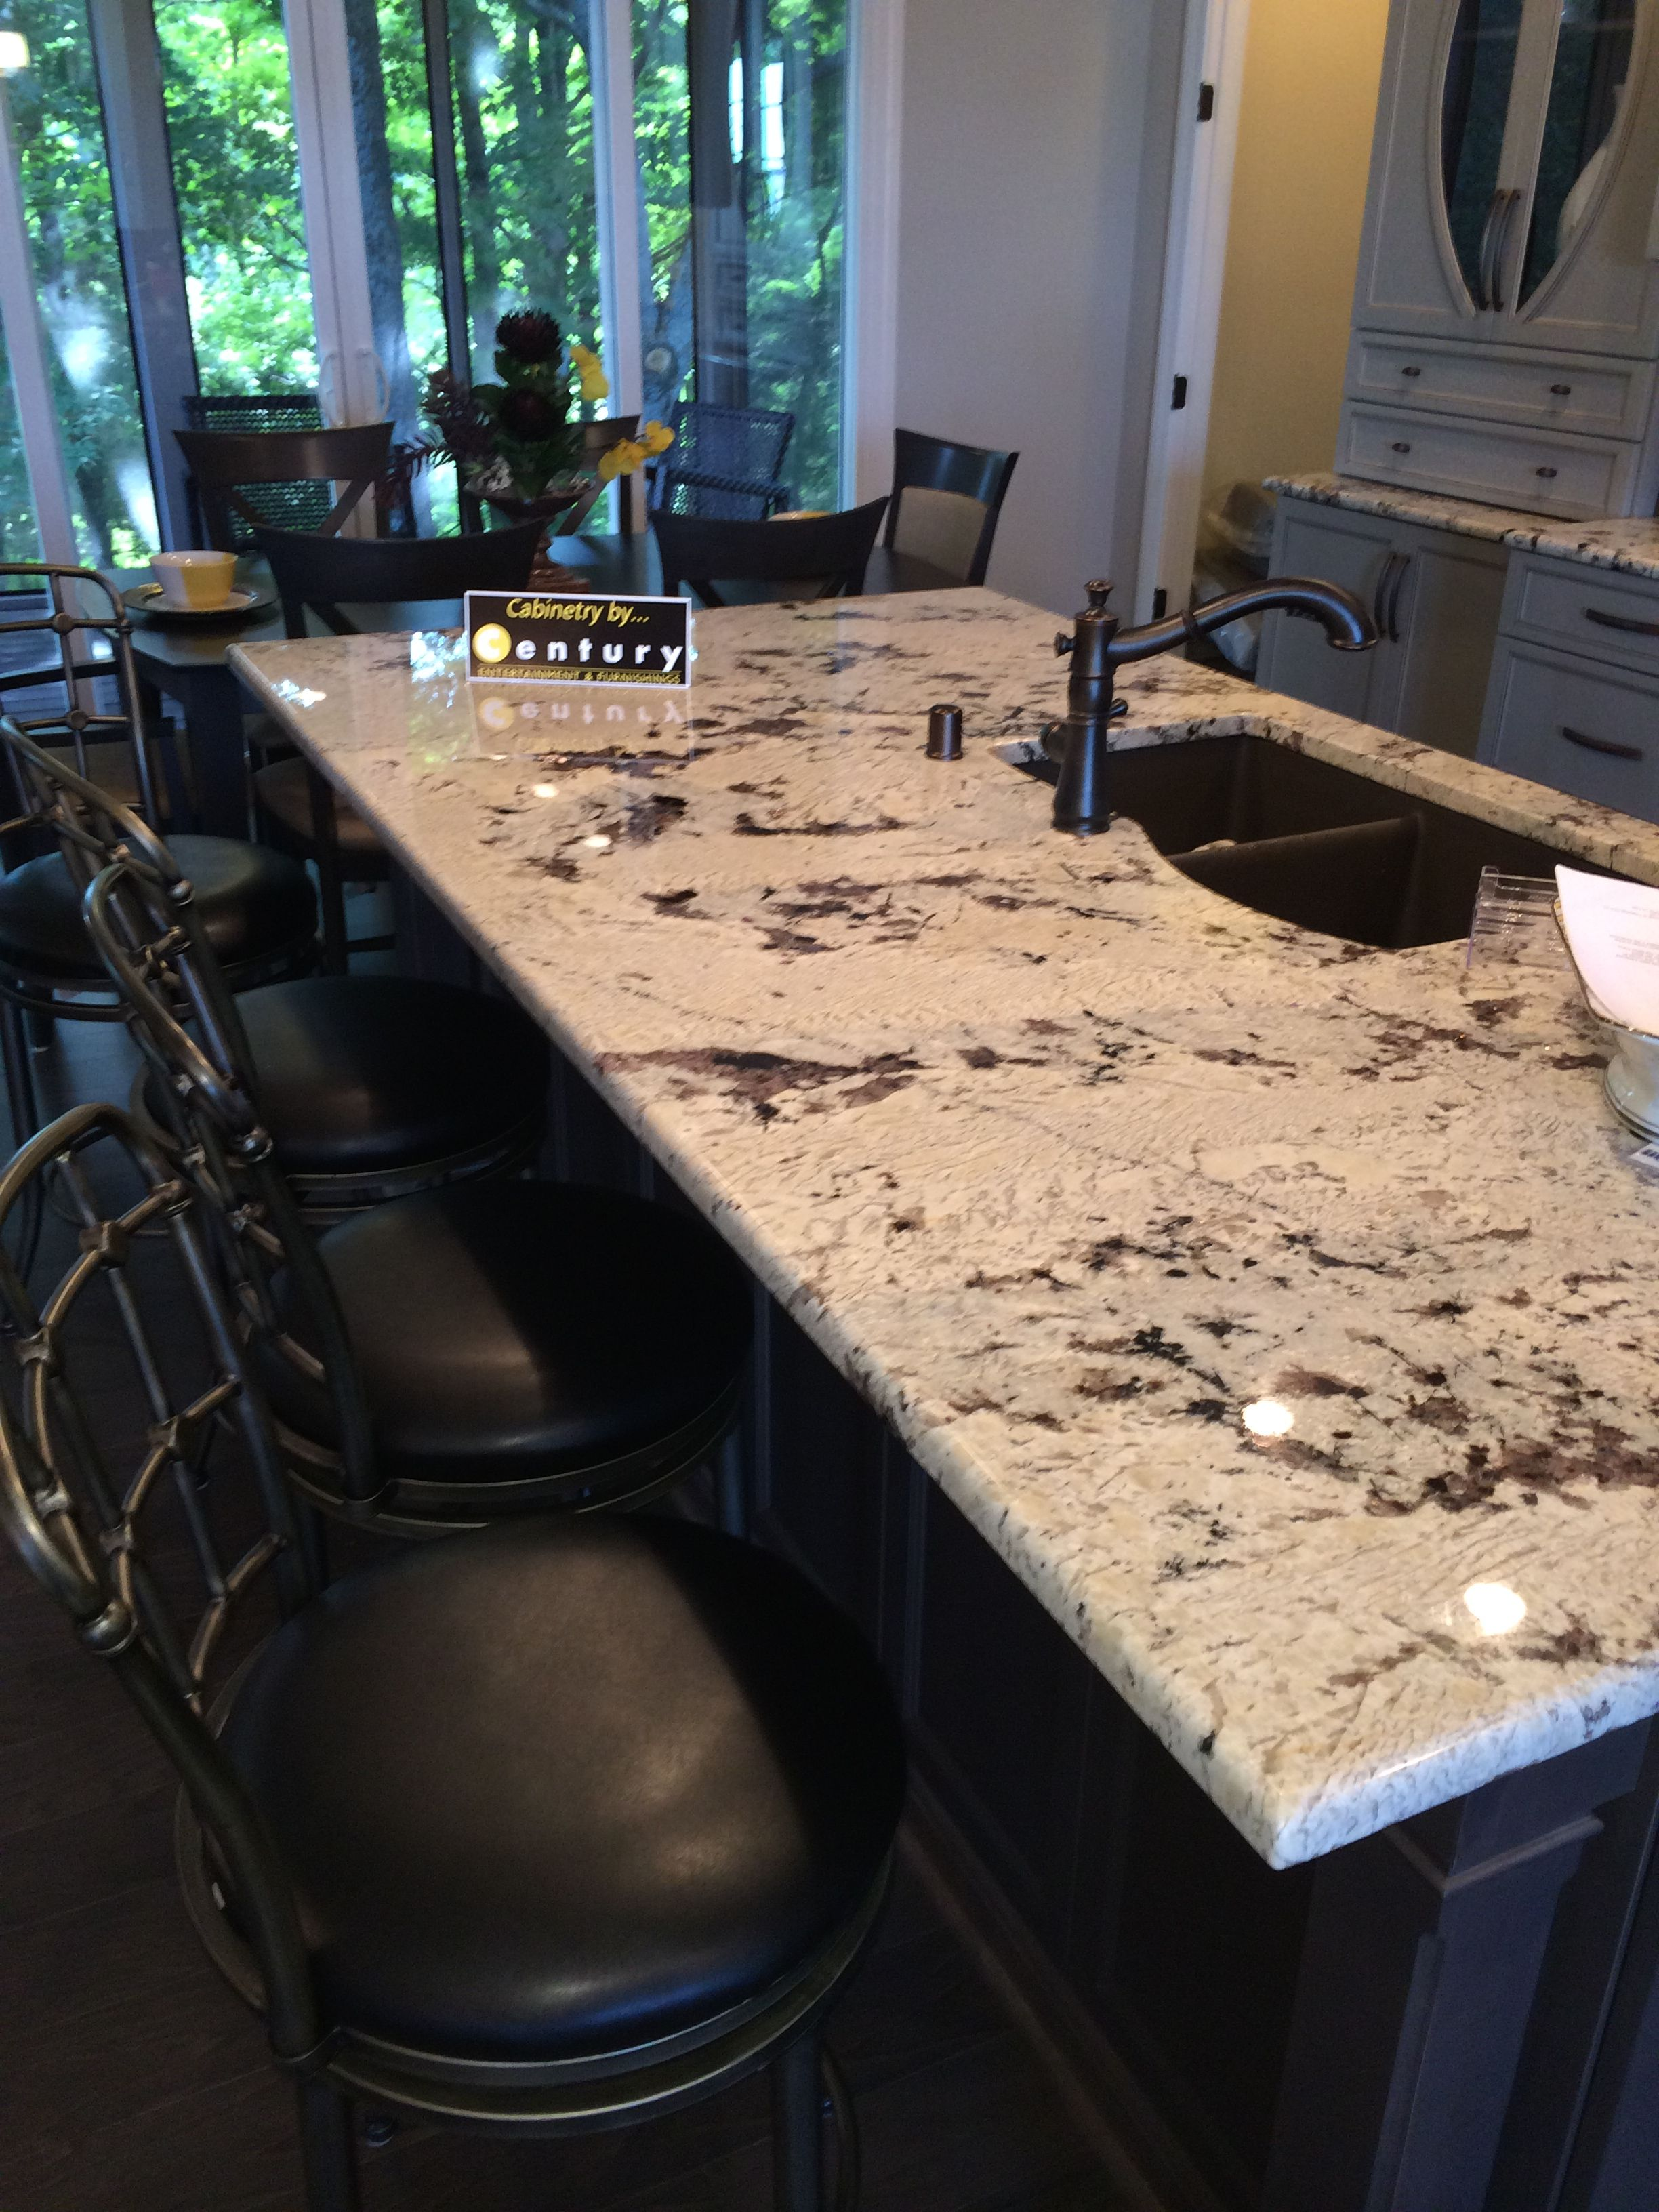 Best Vintage Alaska Ice Brown Glacier White Granite Island 400 x 300